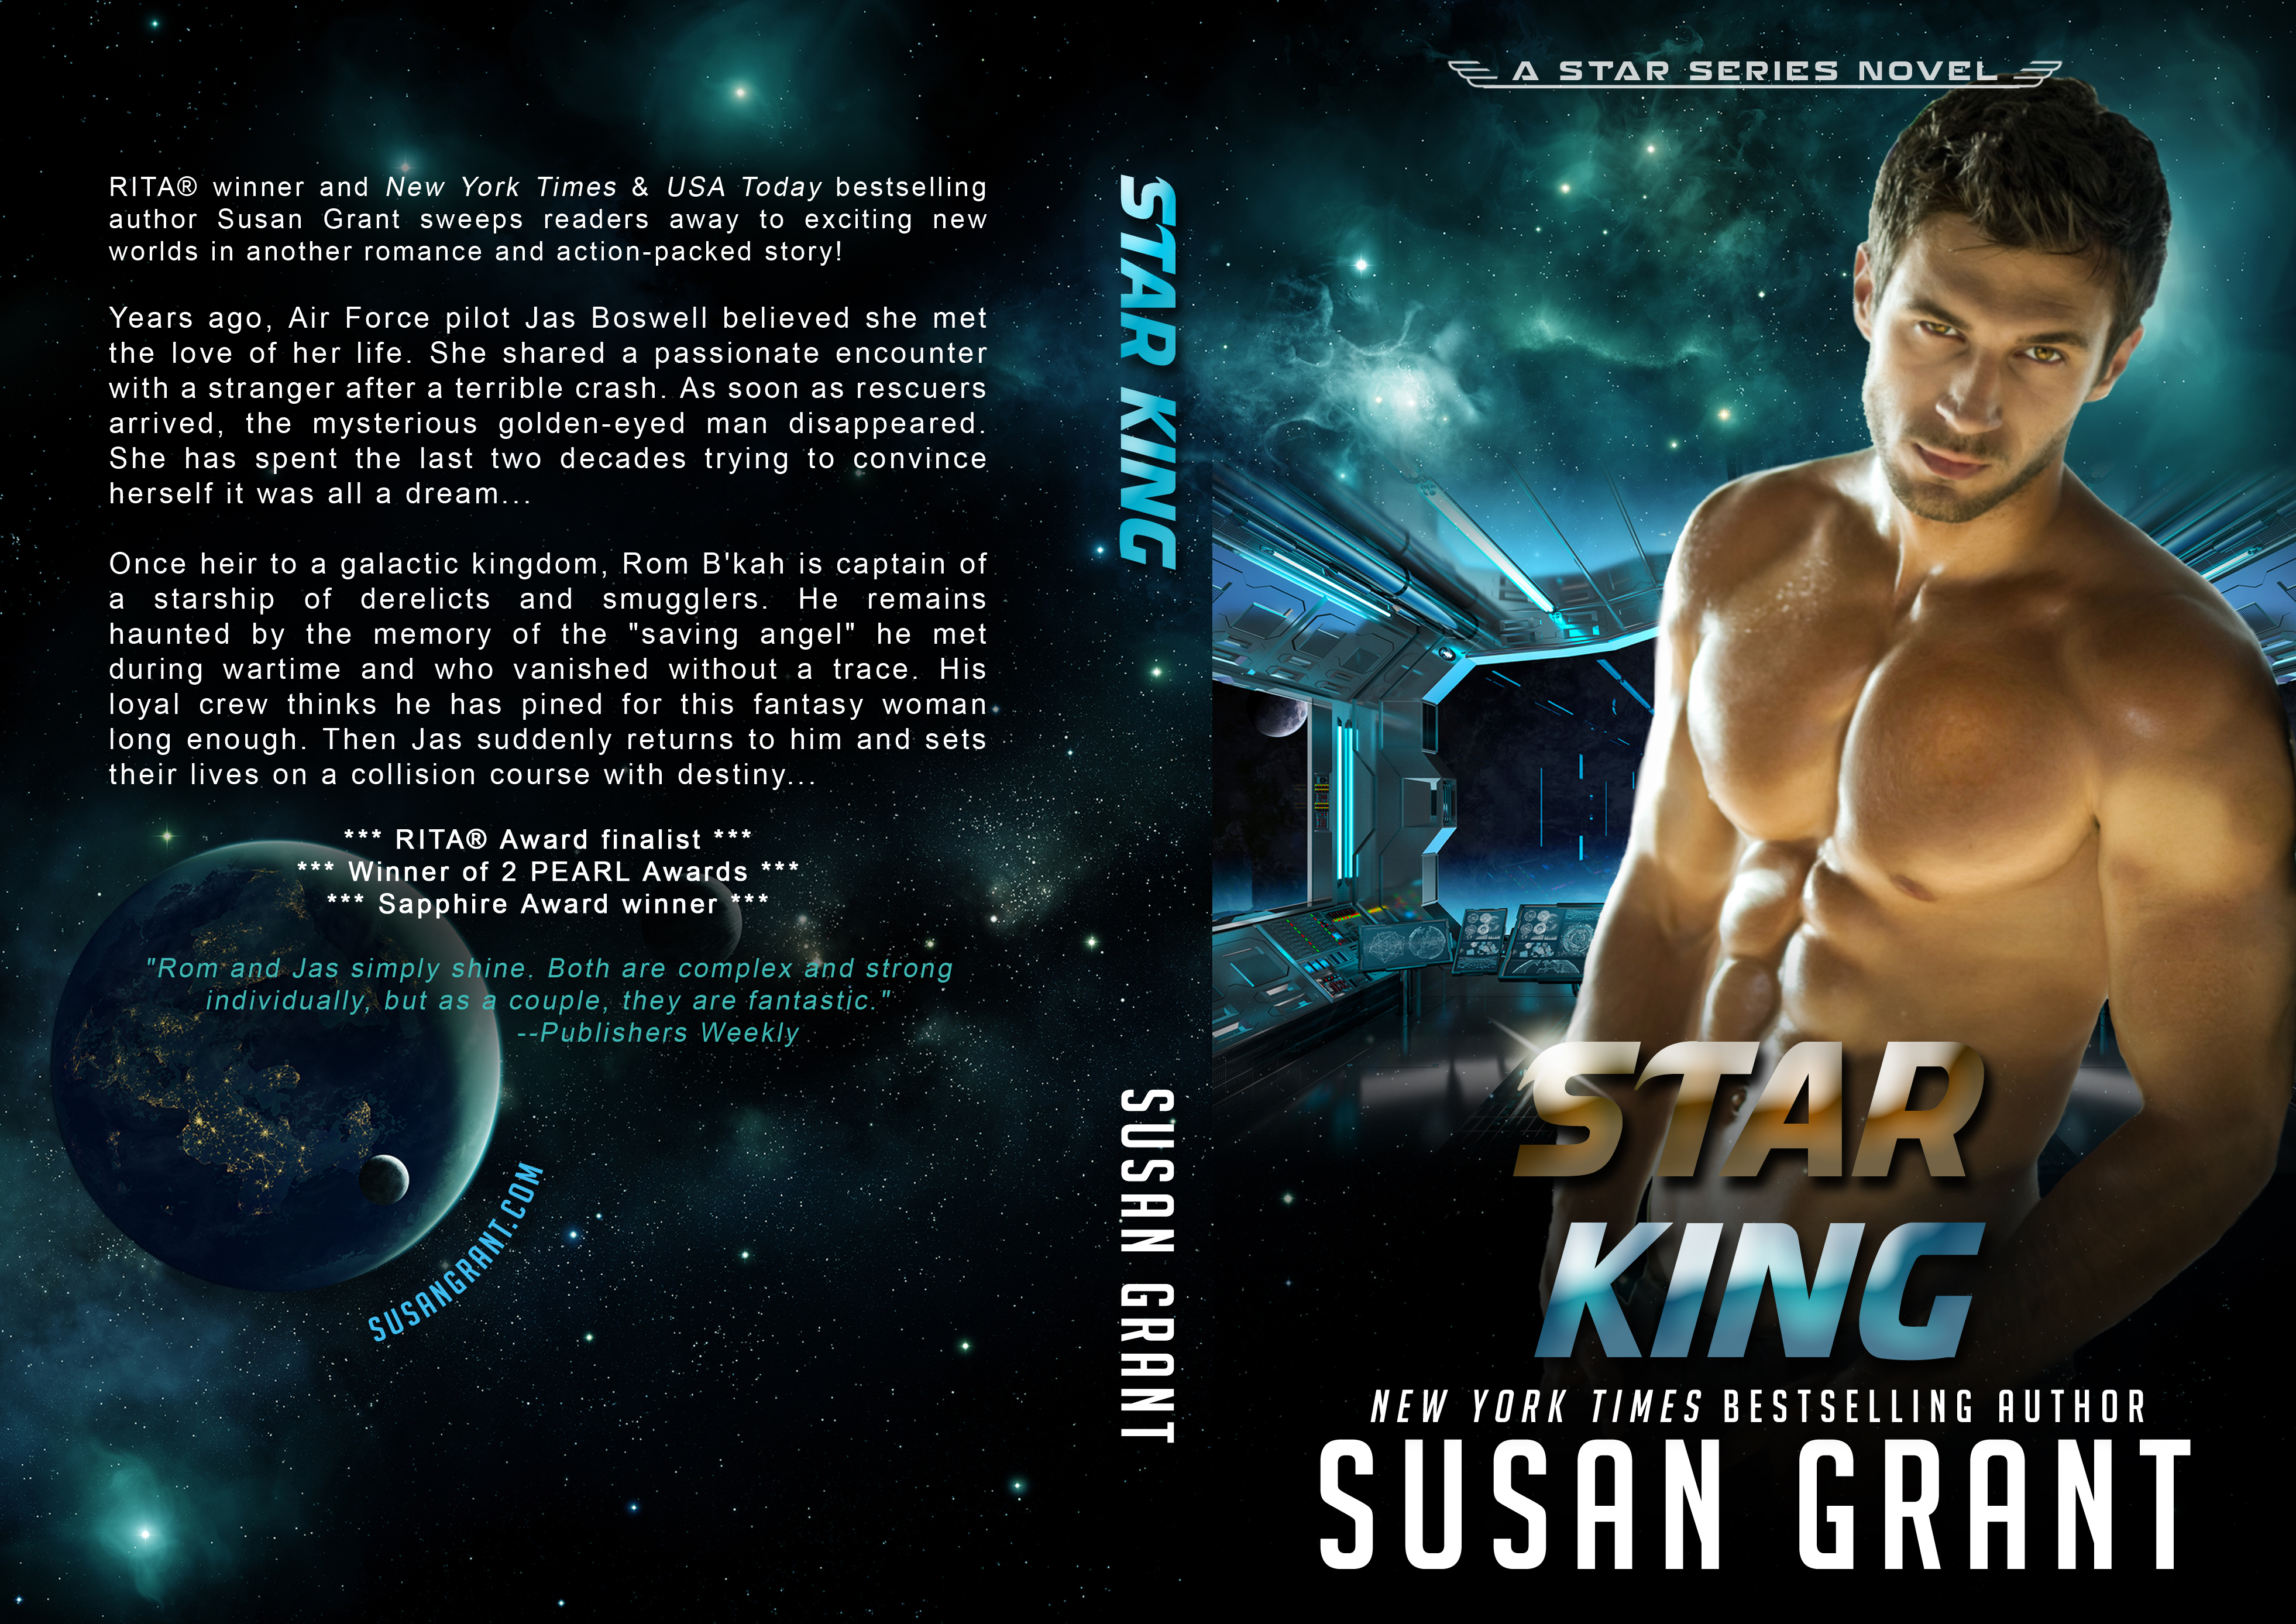 Star King Print Cover by Susan Grant